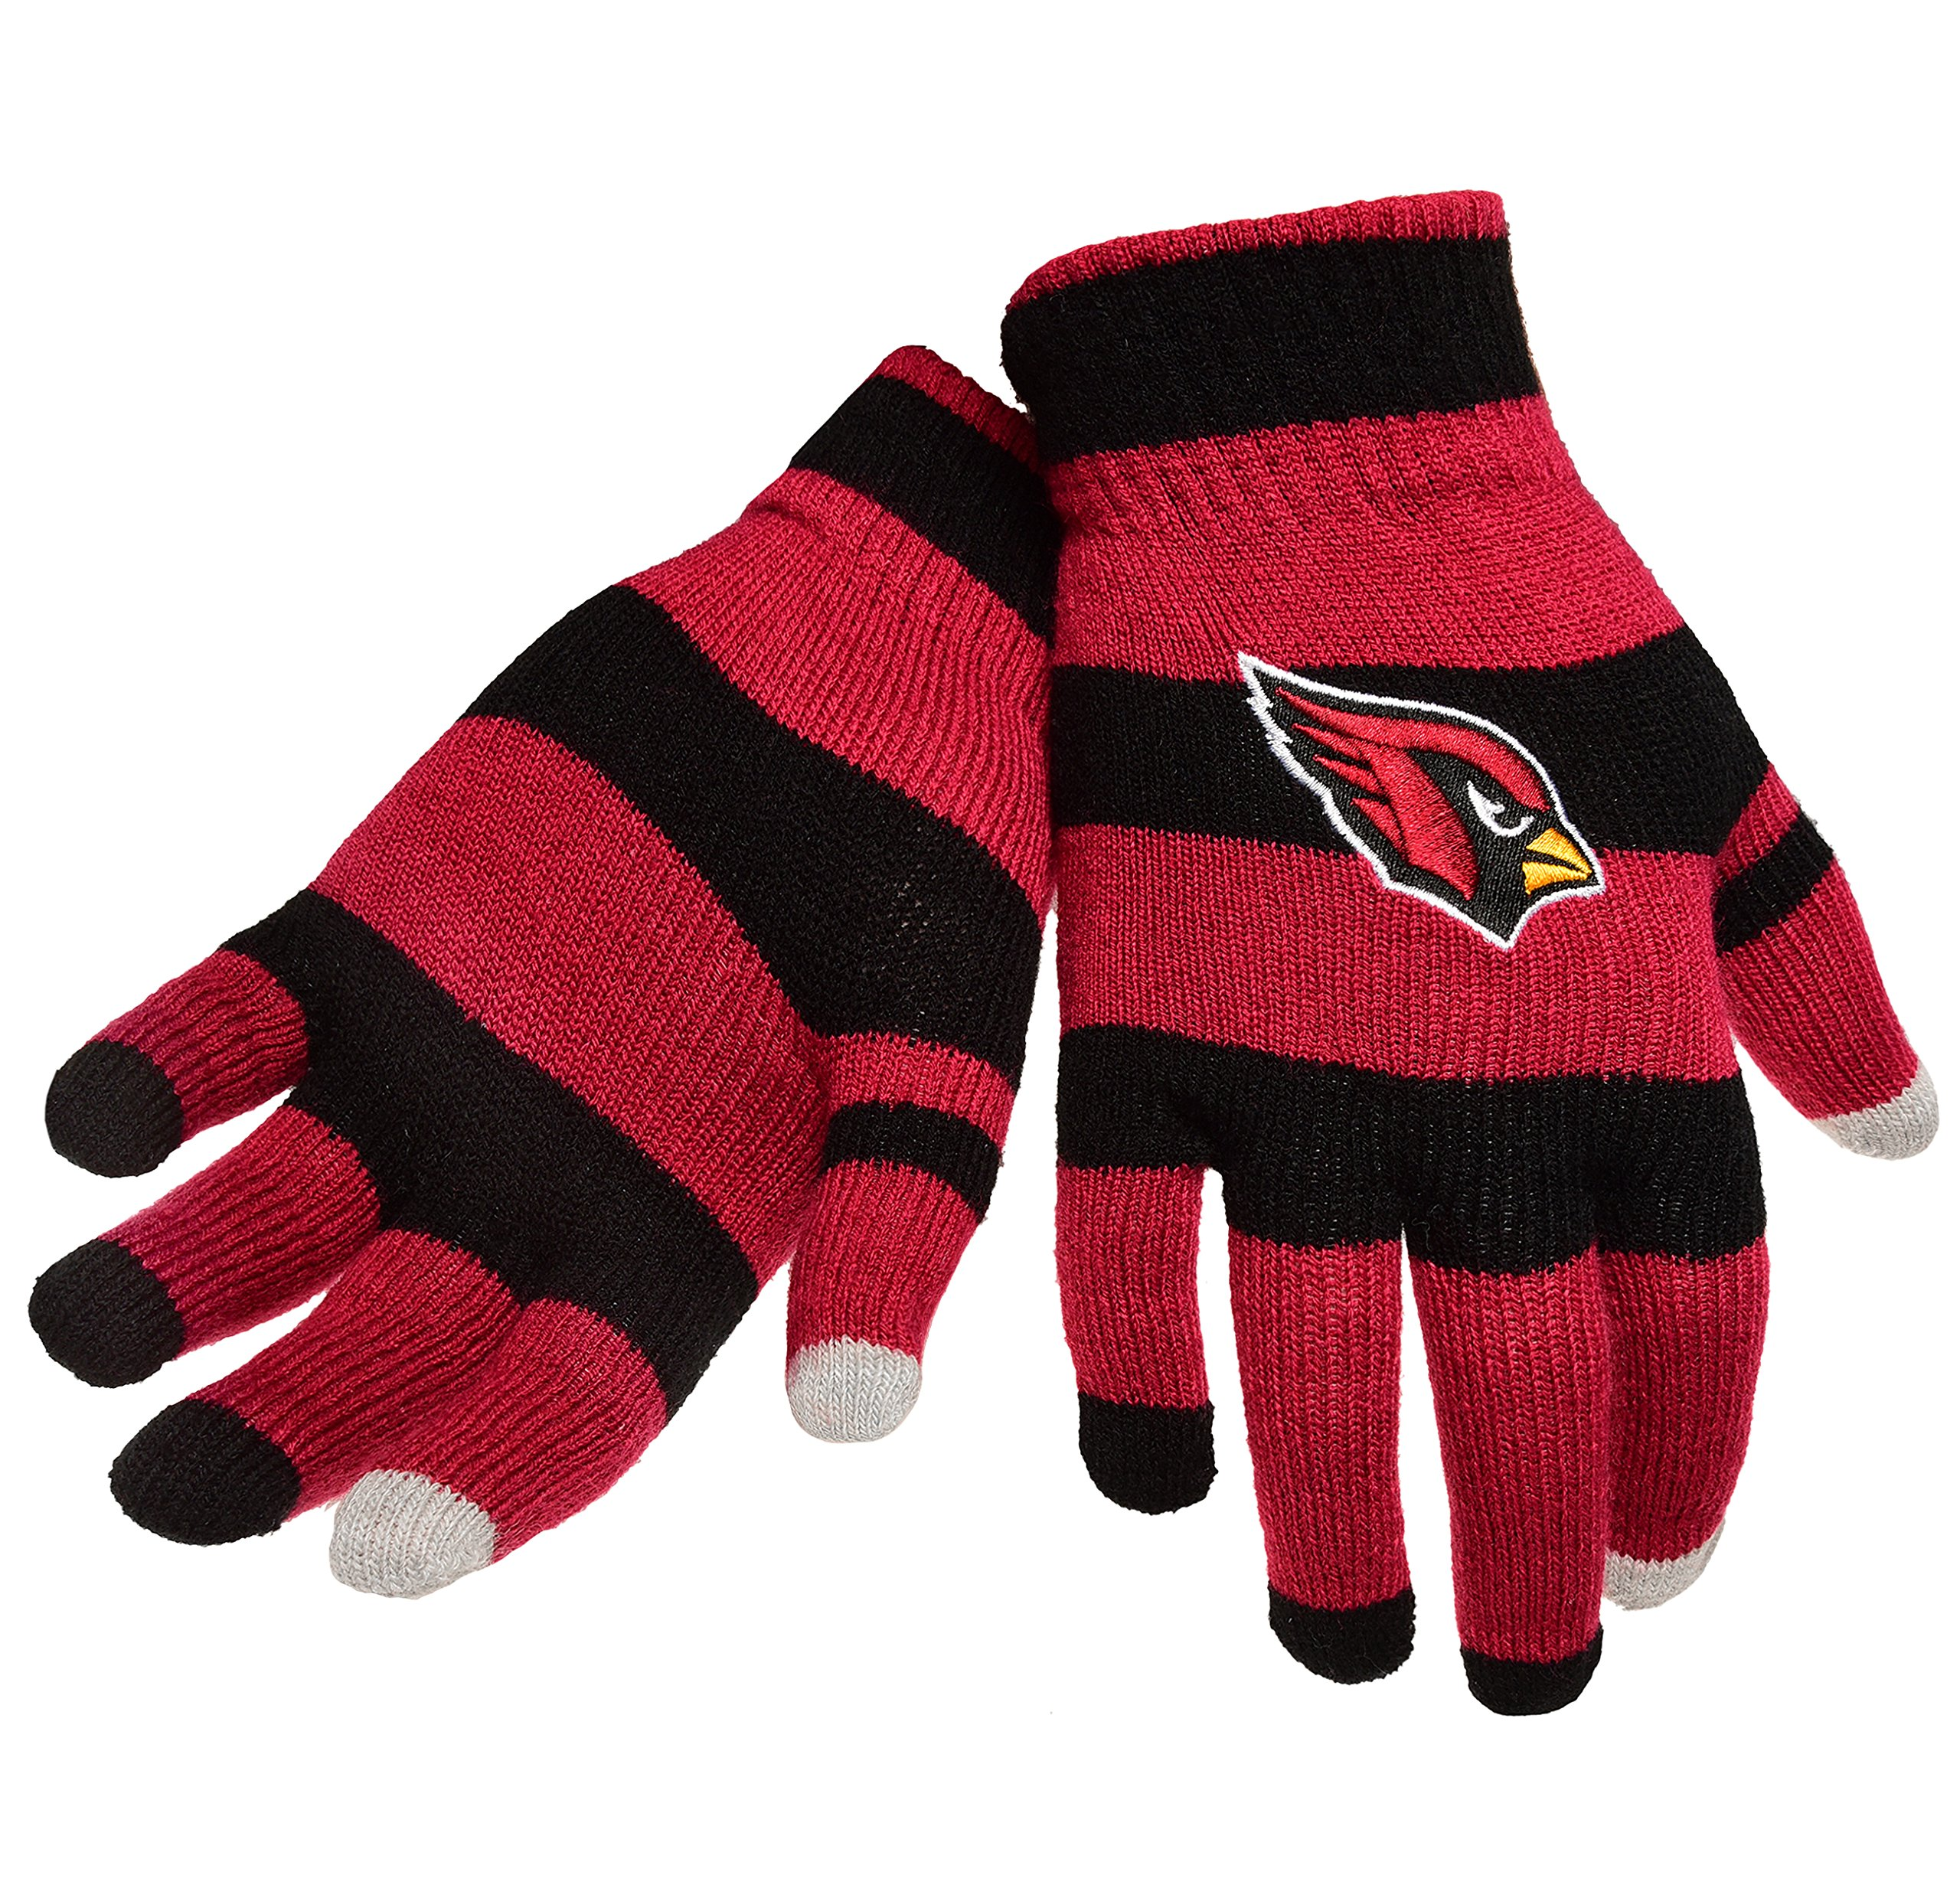 Official NFL Football Licensed Knit Stripe Glove with Texting Tips, One Size, ARIZONA CARDNIALS